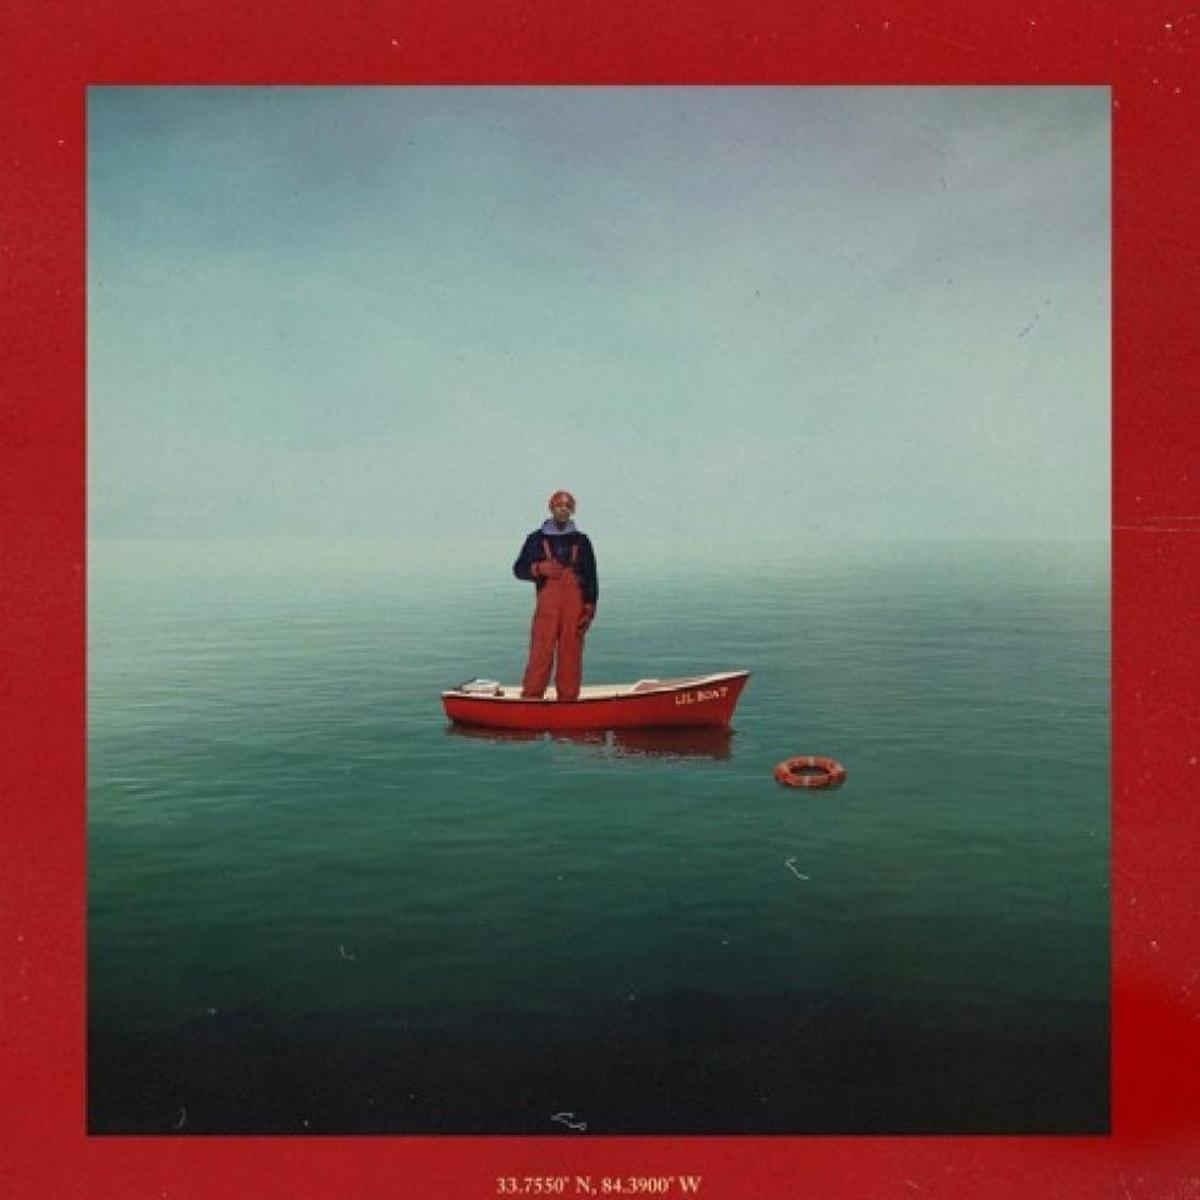 Lil Yachty/Quality Control Music/Capitol Records/Motown